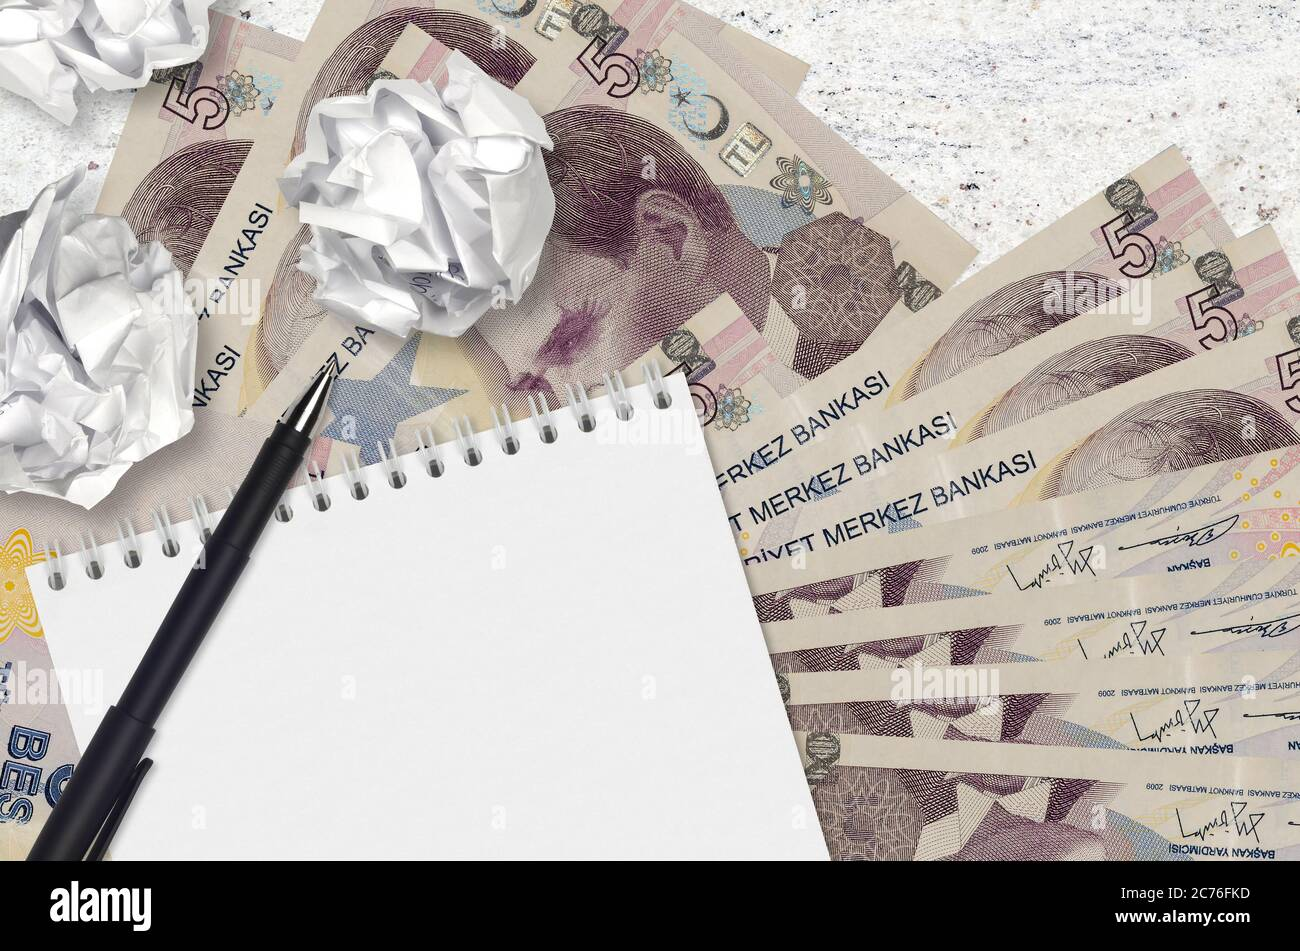 5 Turkish Lira Bills And Balls Of Crumpled Paper With Notepad Bad Ideas Or Less Of Inspiration Concept Searching Ideas For Investment Stock Photo Alamy